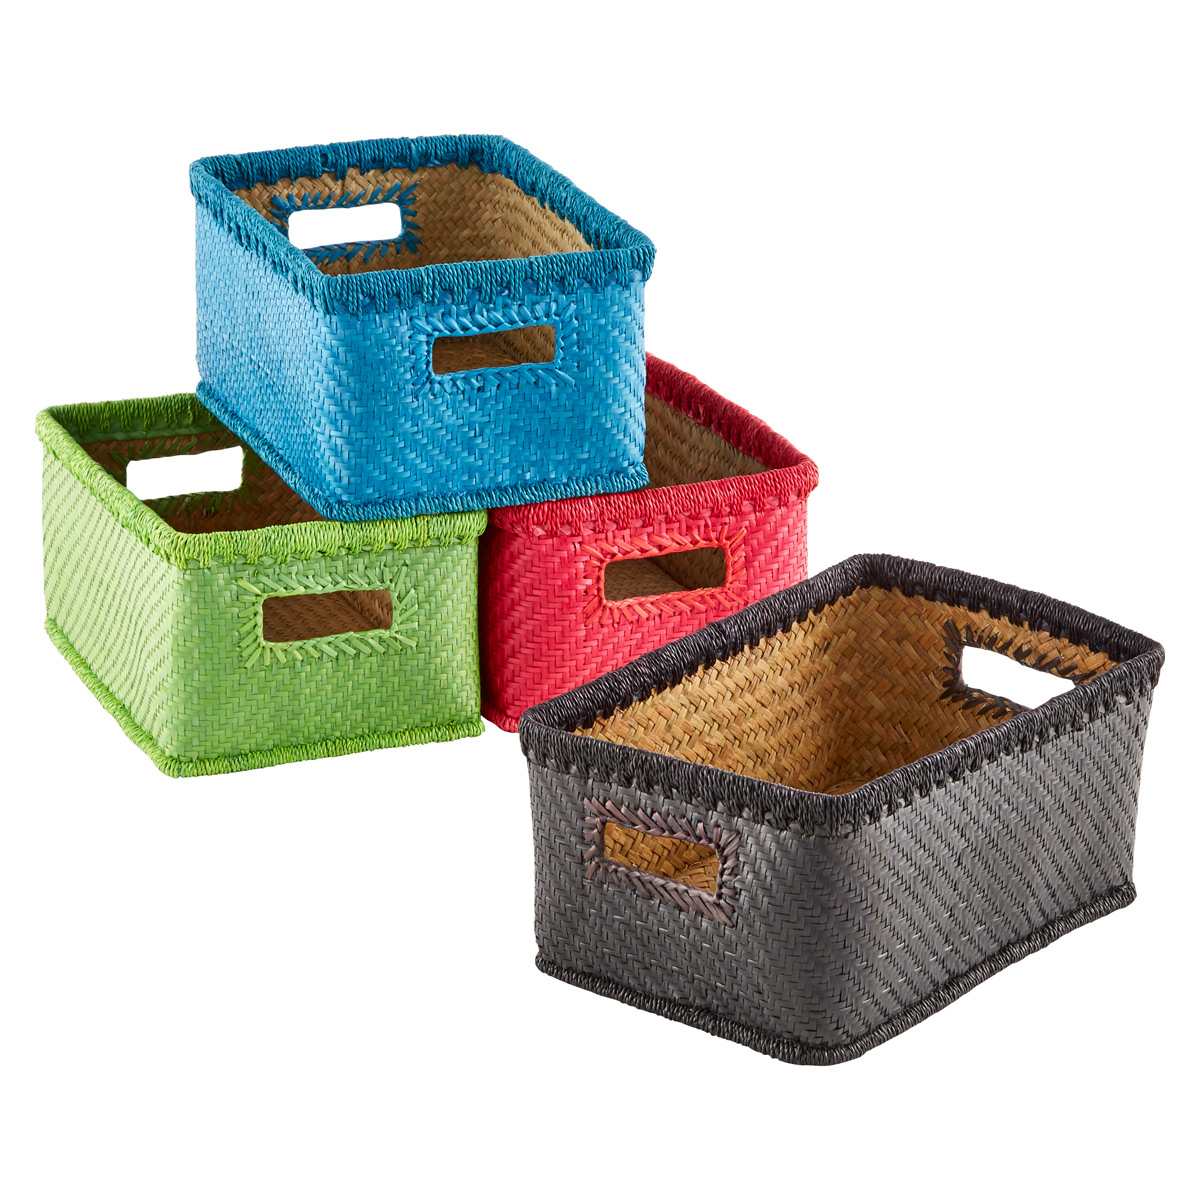 Small Palm Leaf Woven Storage Bins with Handles  sc 1 st  The Container Store & Small Palm Leaf Woven Storage Bins with Handles | The Container Store